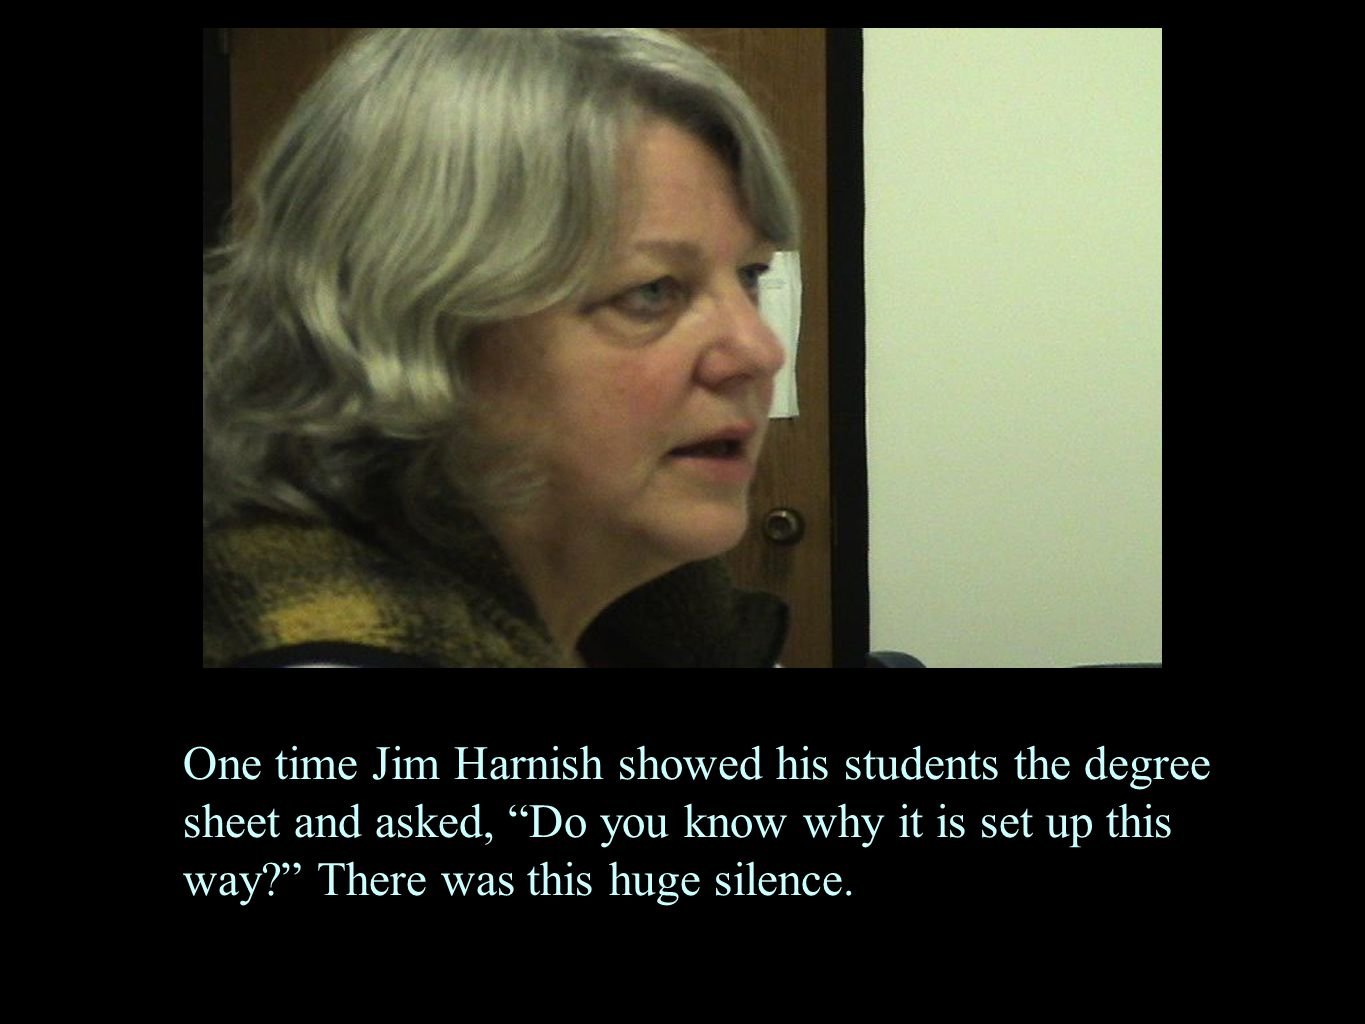 "One time Jim Harnish showed his students the degree sheet and asked, ""Do you know why it is set up this way?"" There was this huge silence."